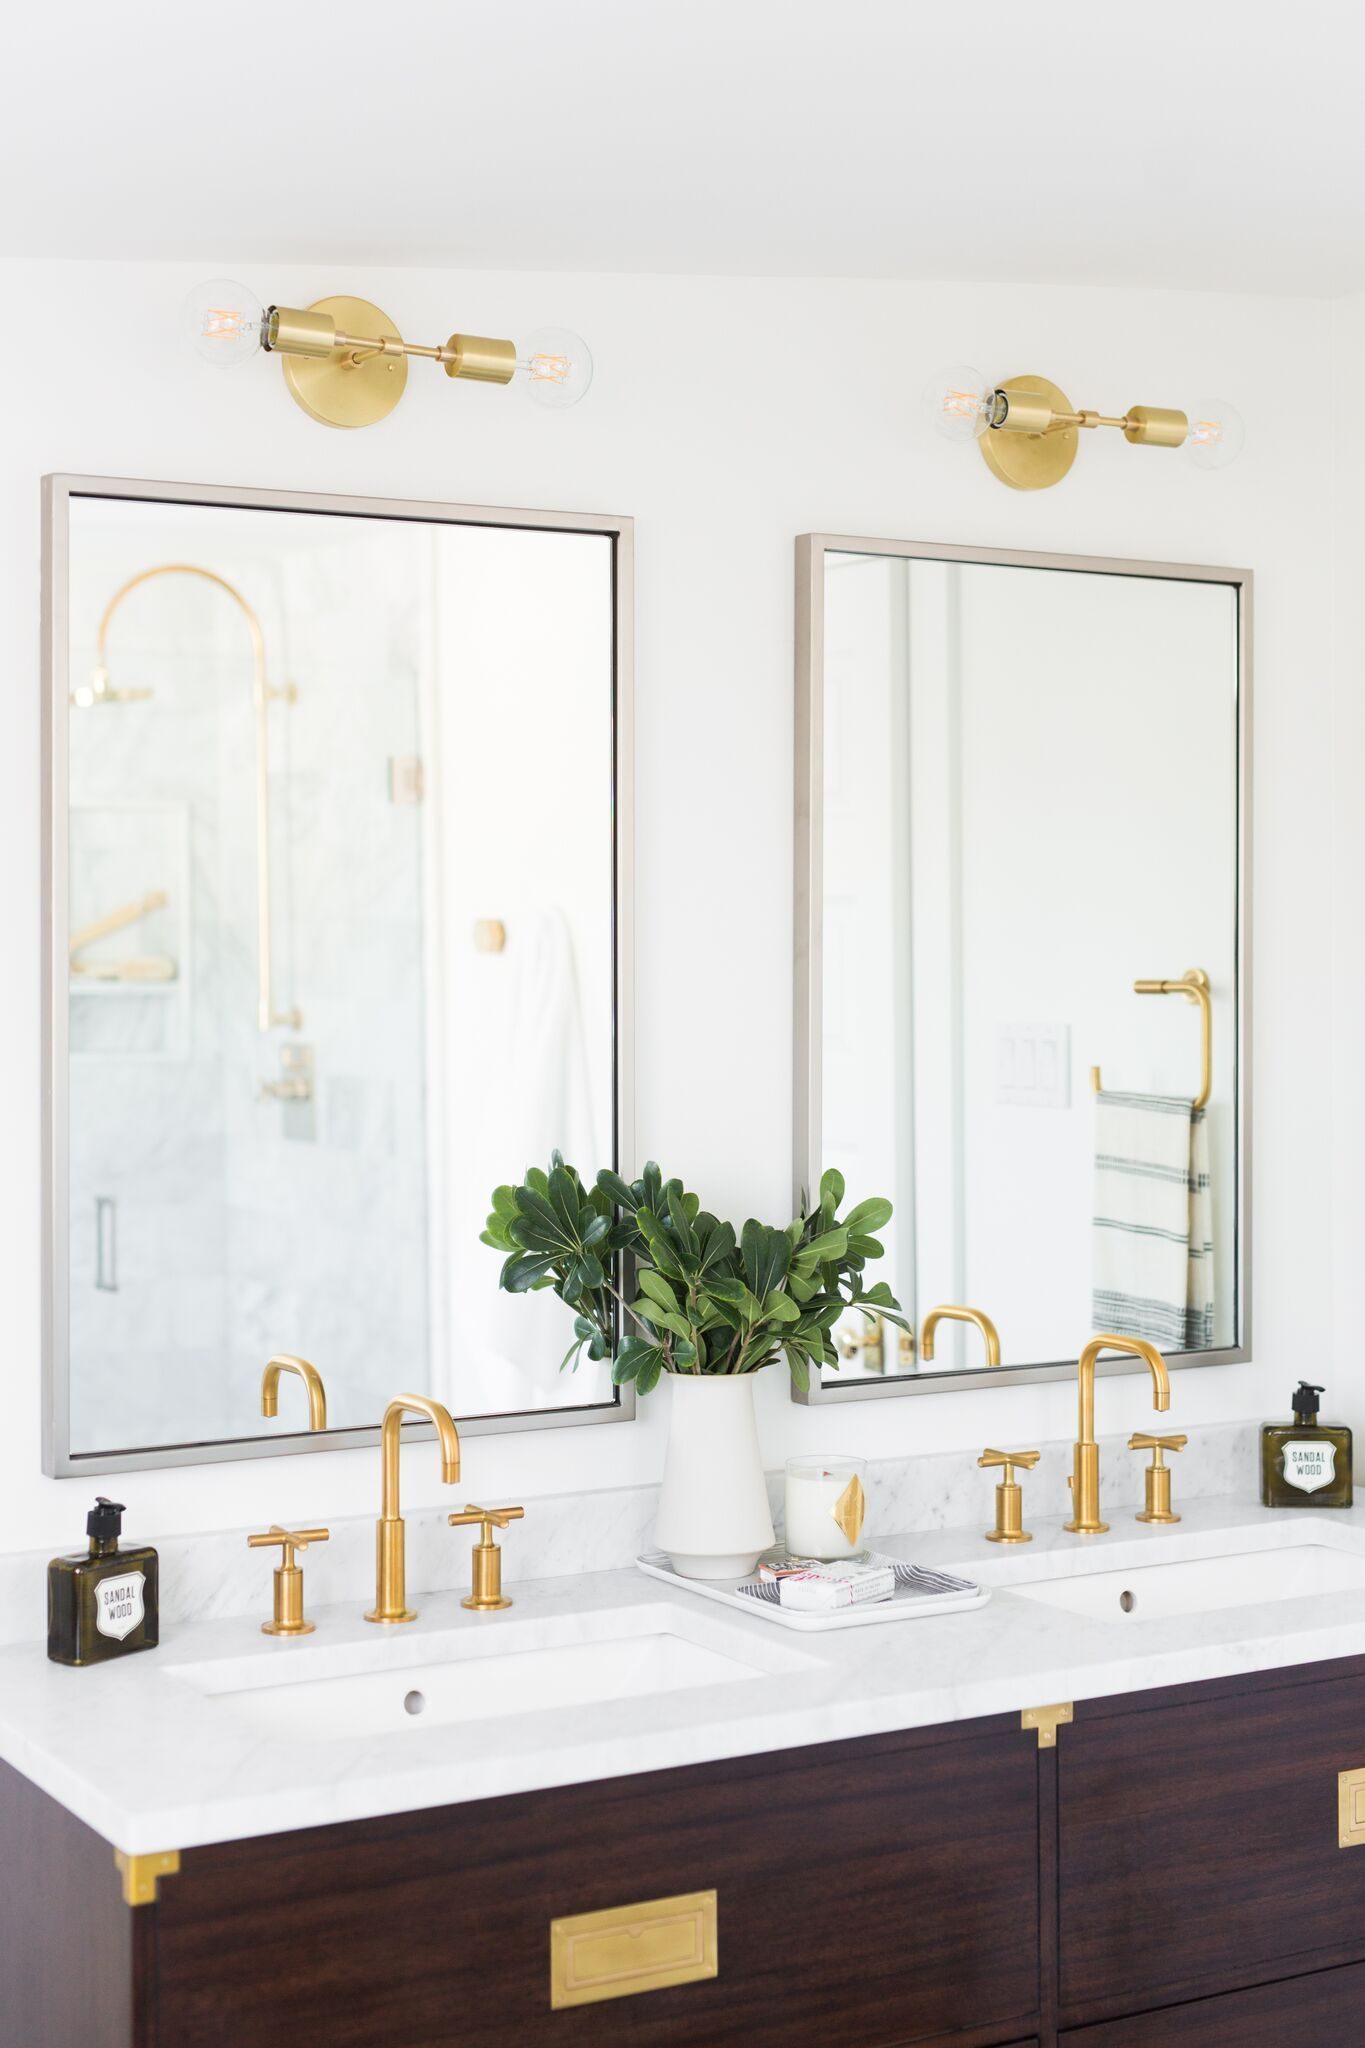 Gold Light Fixtures Above The Double Mirrors Gold Light Fixture